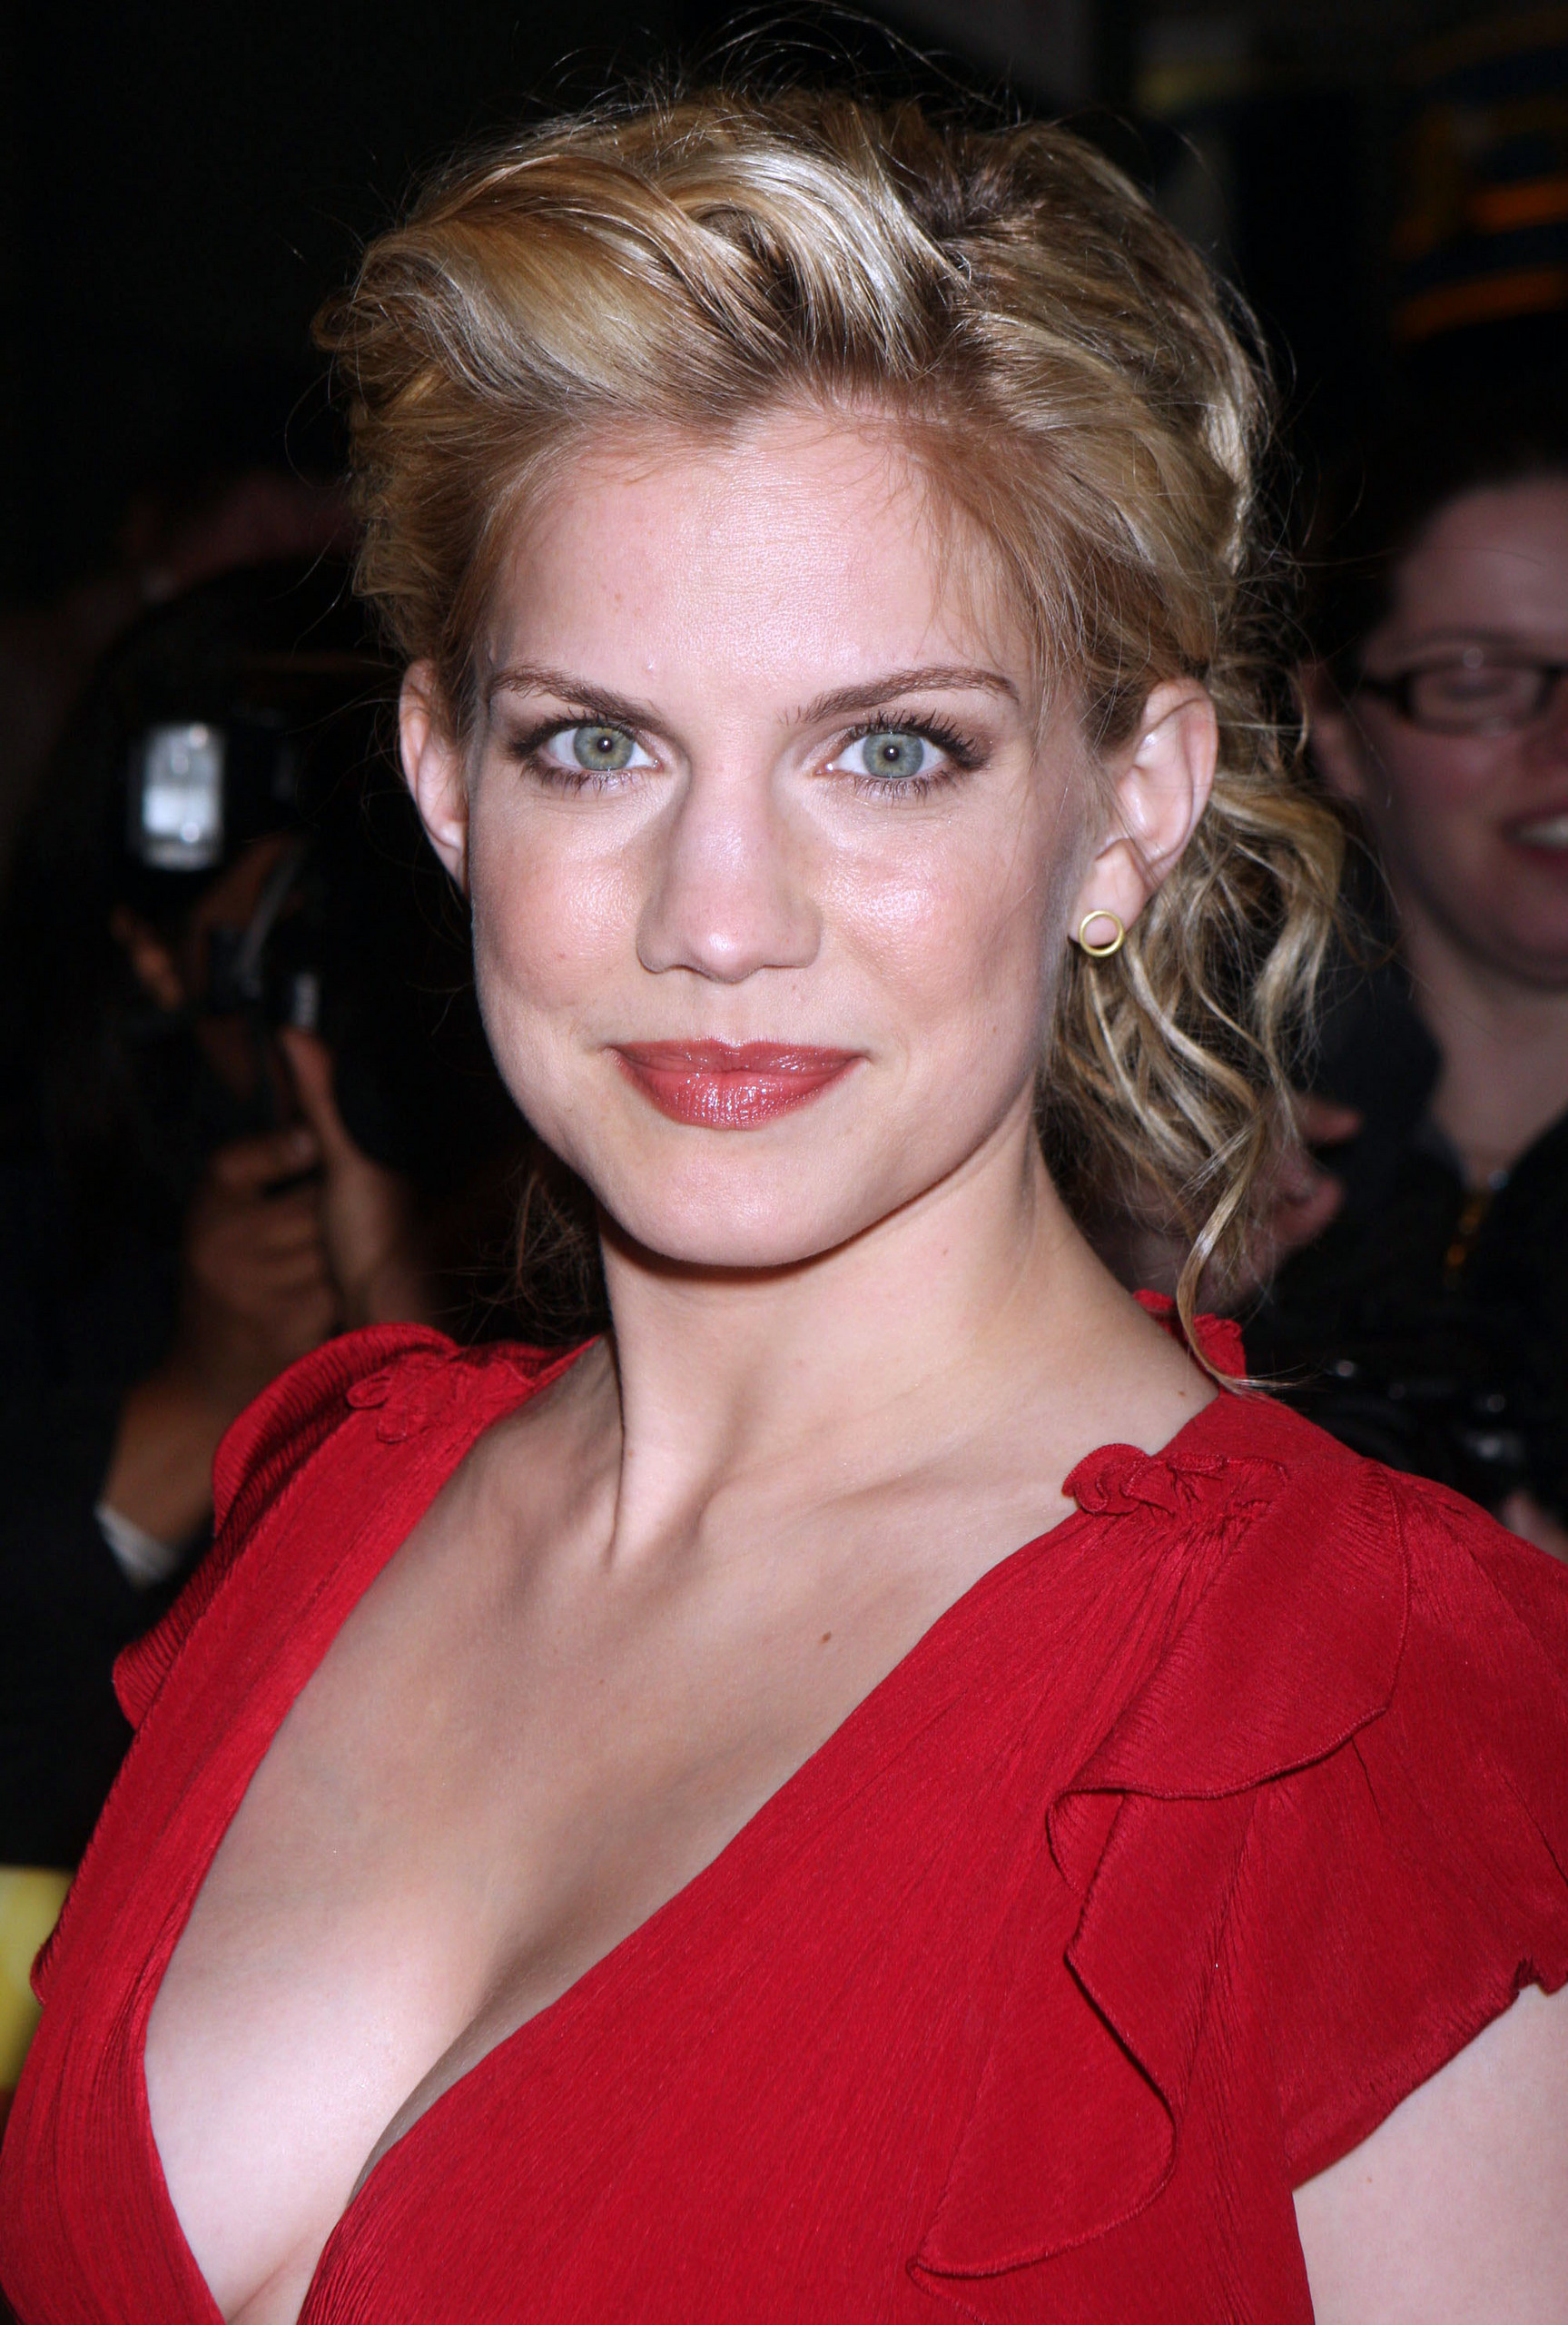 The 36-year old daughter of father Frank Chlumsky and mother Nancy L. Chlumsky, 166 cm tall Anna Chlumsky in 2017 photo